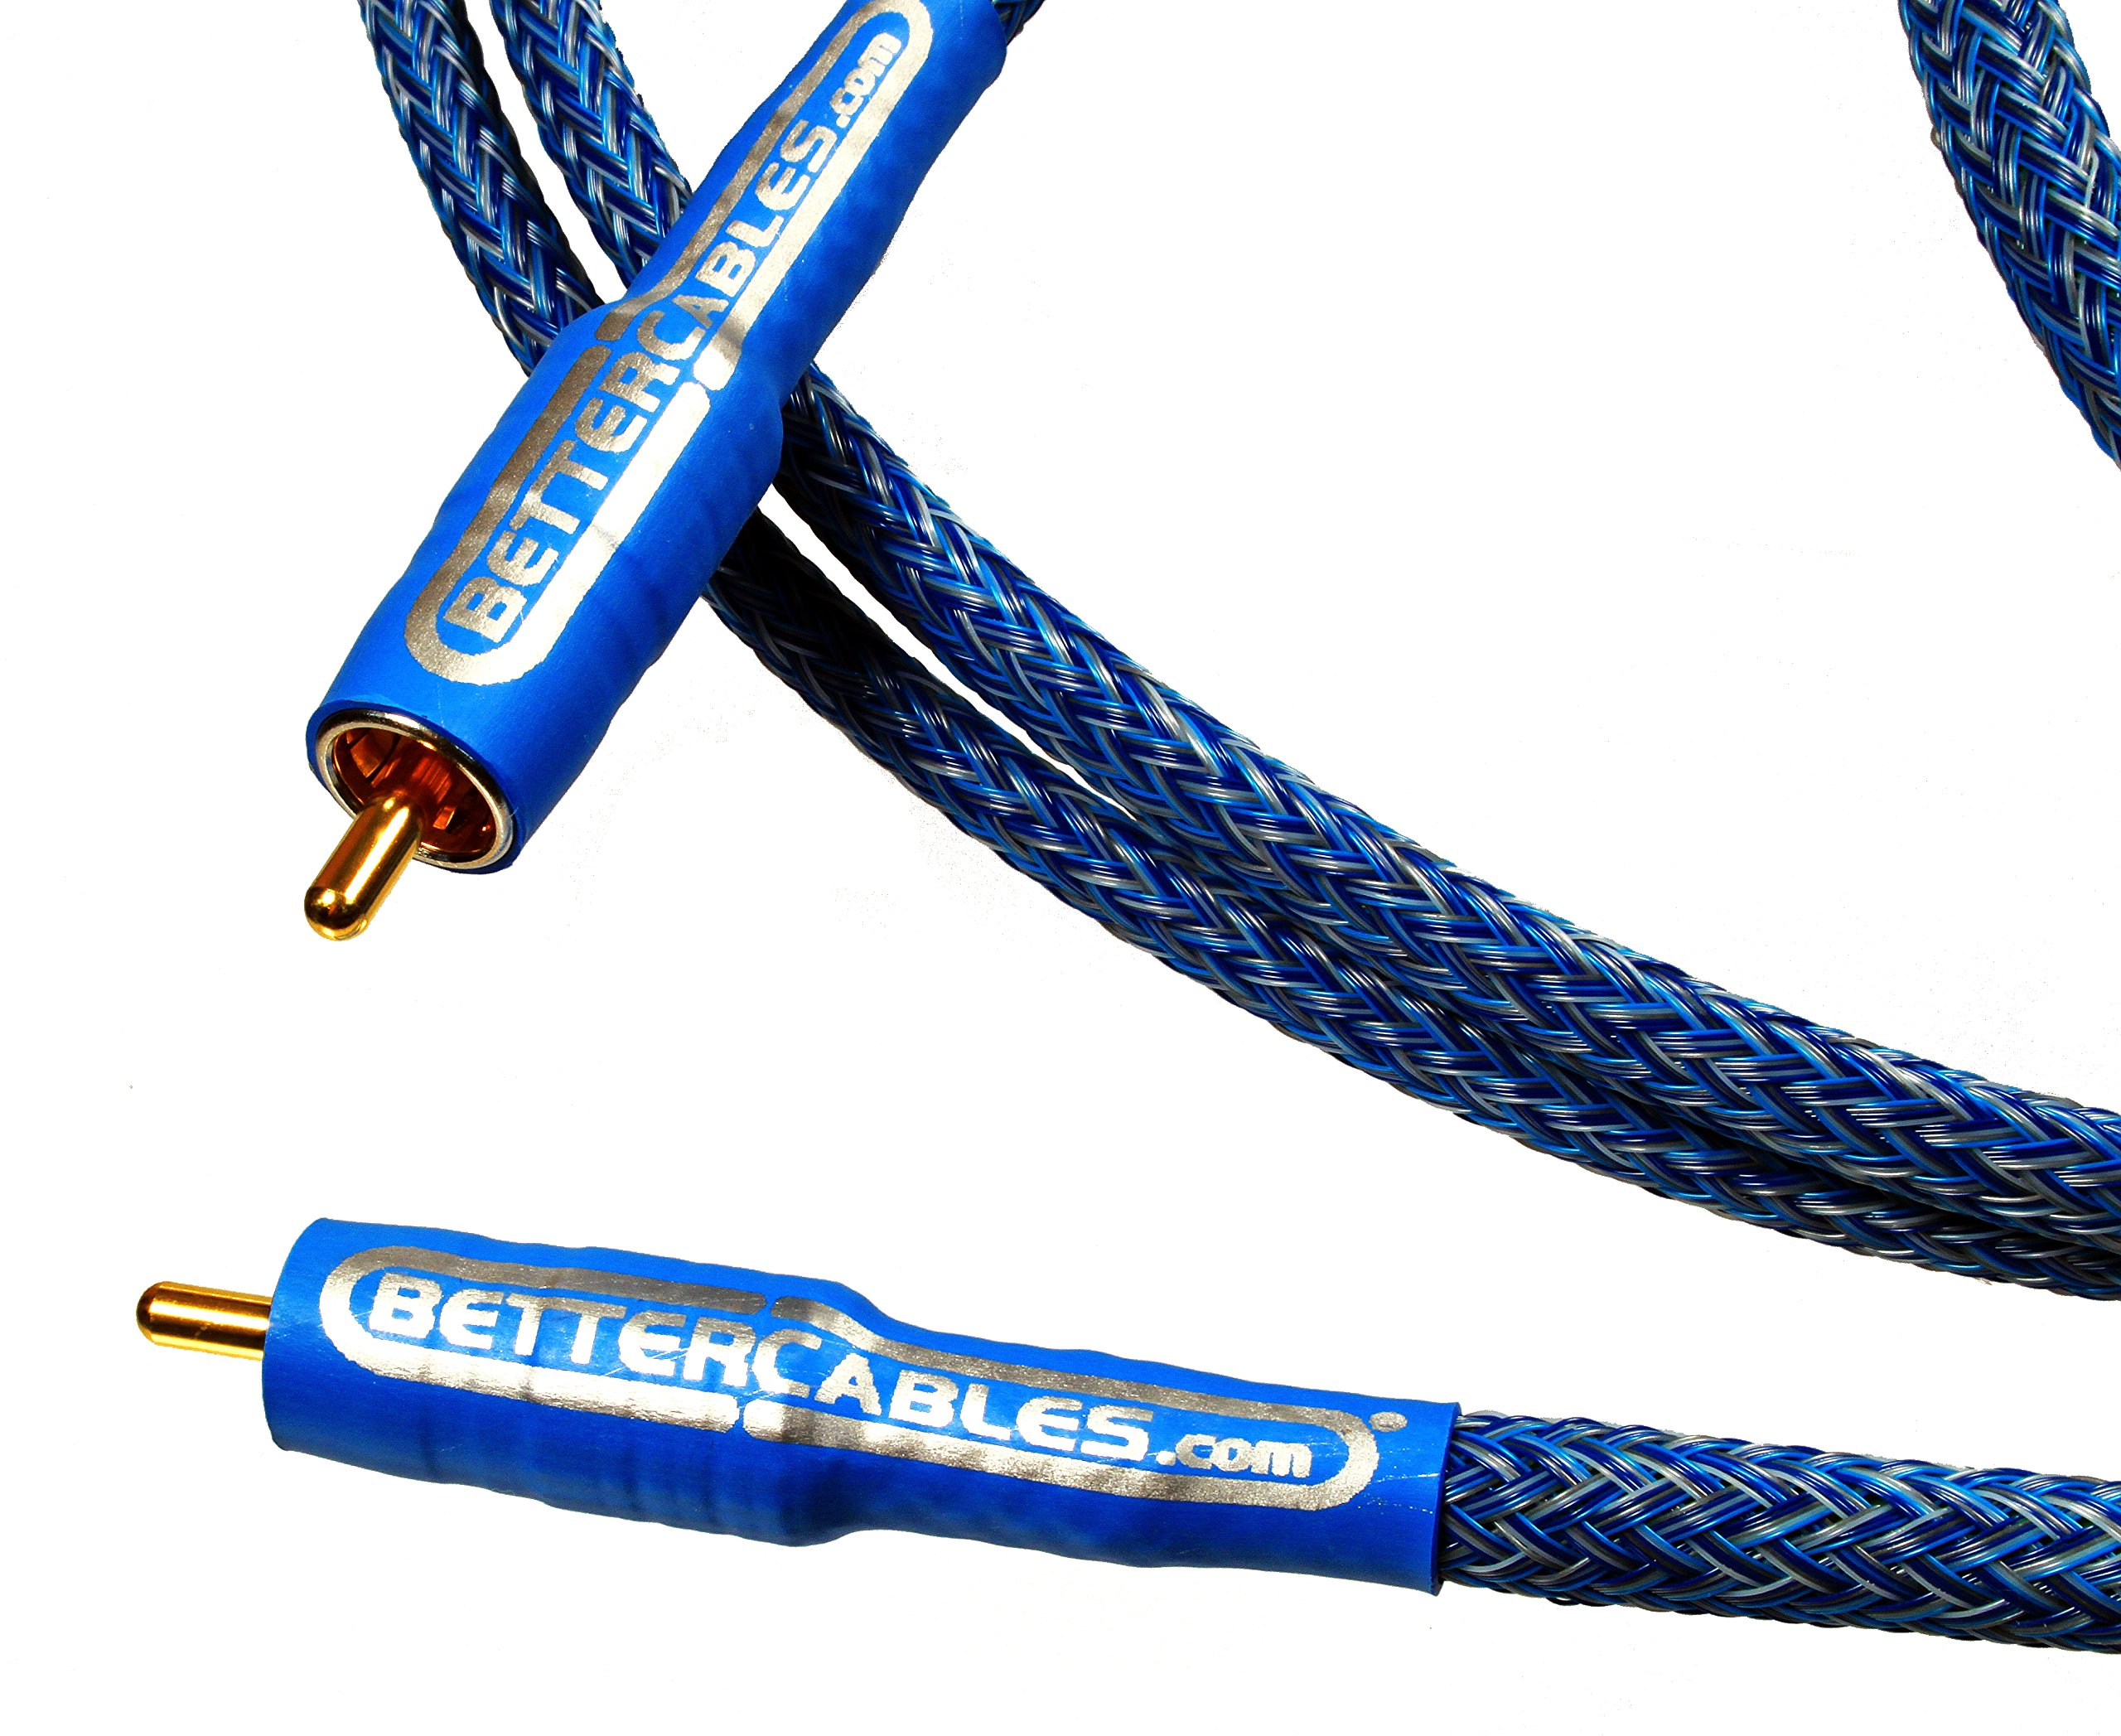 Better Cables Blue Truth Digital Coax Cable - High-End, High-Performance, Silver/Copper Hybrid, Low-Capacitance, Premium Coaxial Cable (RCA Cable) (3 feet (1 Meter))